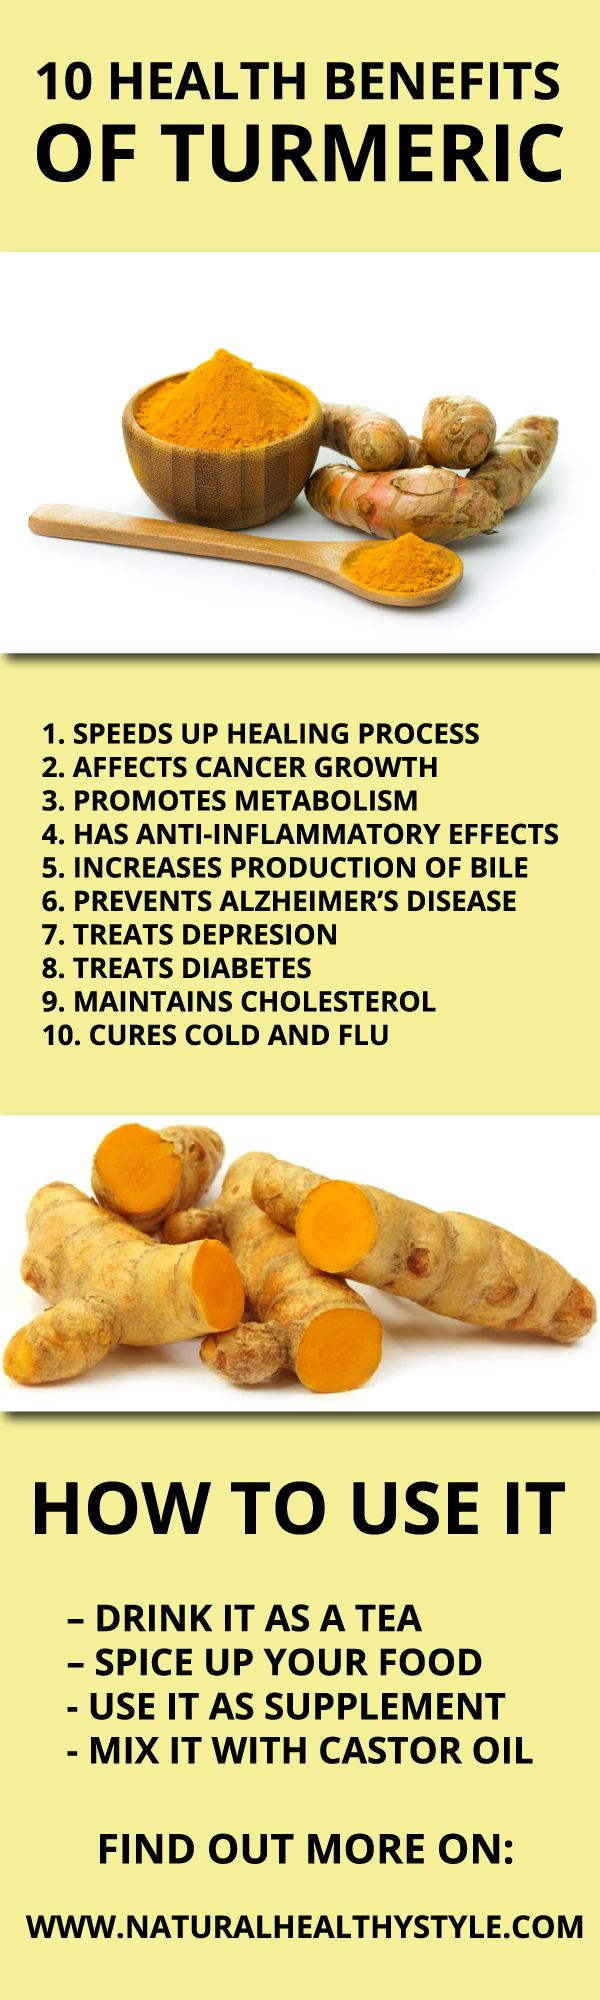 Turmeric has been used as a herb over the centuries for its anti-inflammatory properties and is also packed with several nutrients, including dietary fiber, sodium, vitamin C, E, K, calcium, iron, zinc and magnesium. Due to all these properties, this orange-colored spice works great in treating lots of different health problems. Here are some evidence-based